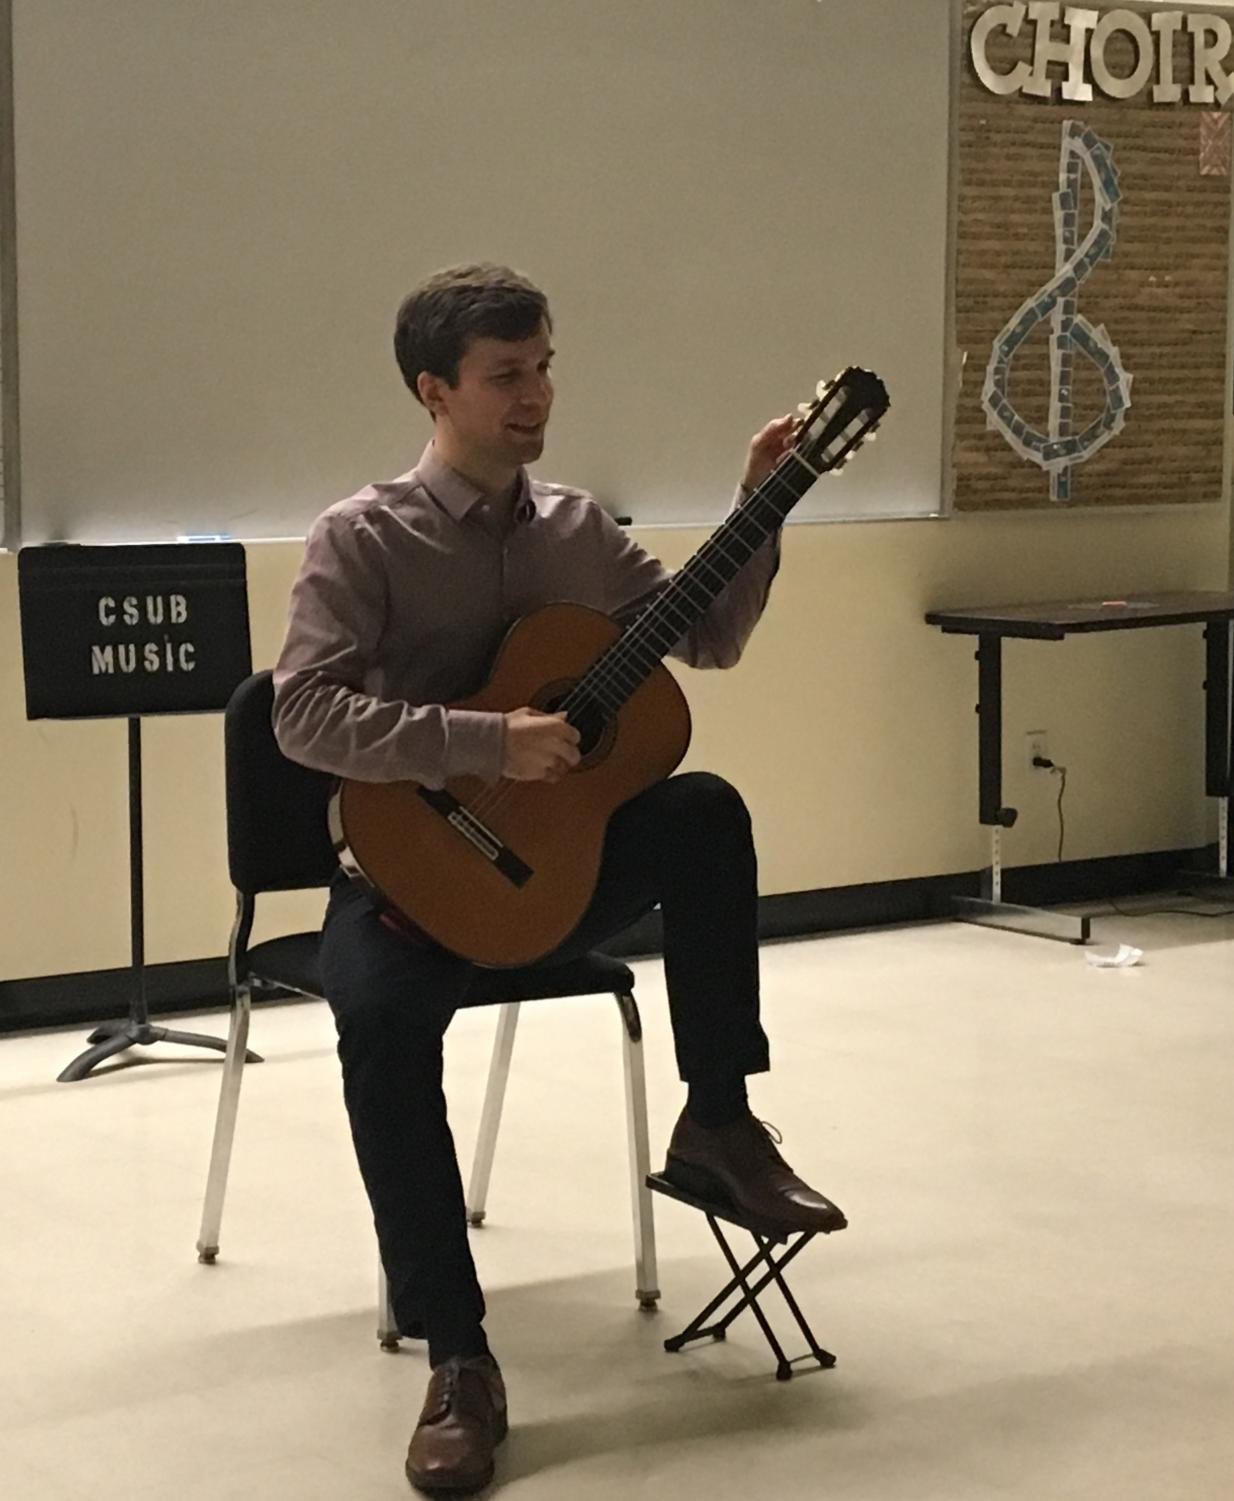 Cameron O'Connor performed for the Music and Theatre Department at Cal State Bakersfield, on Thursday Feb. 15th.